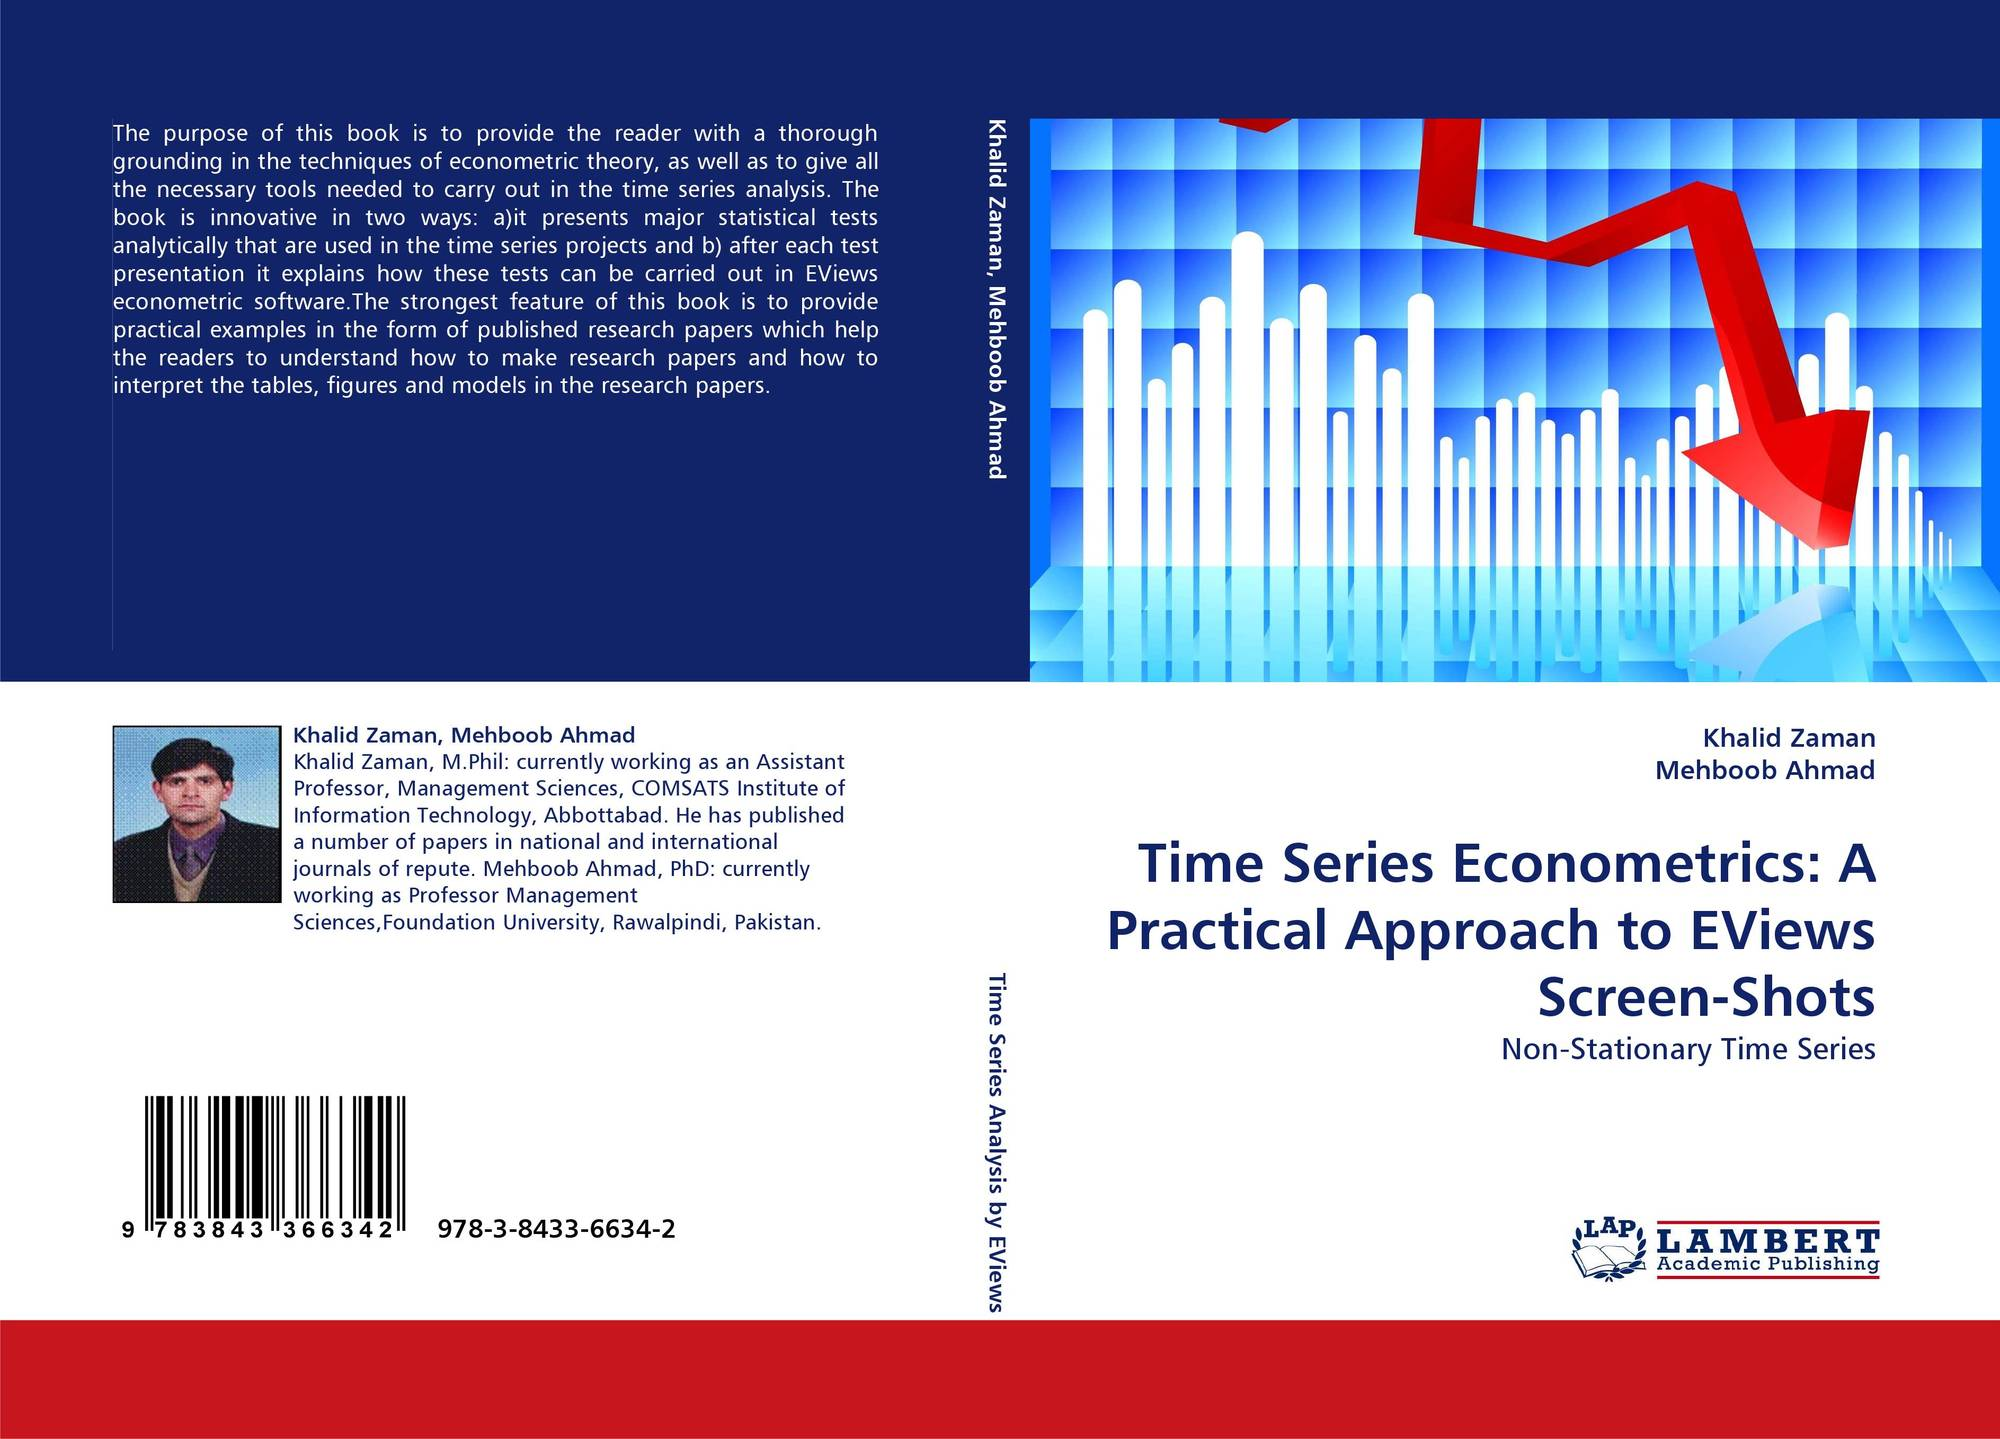 Research papers on time series econometrics